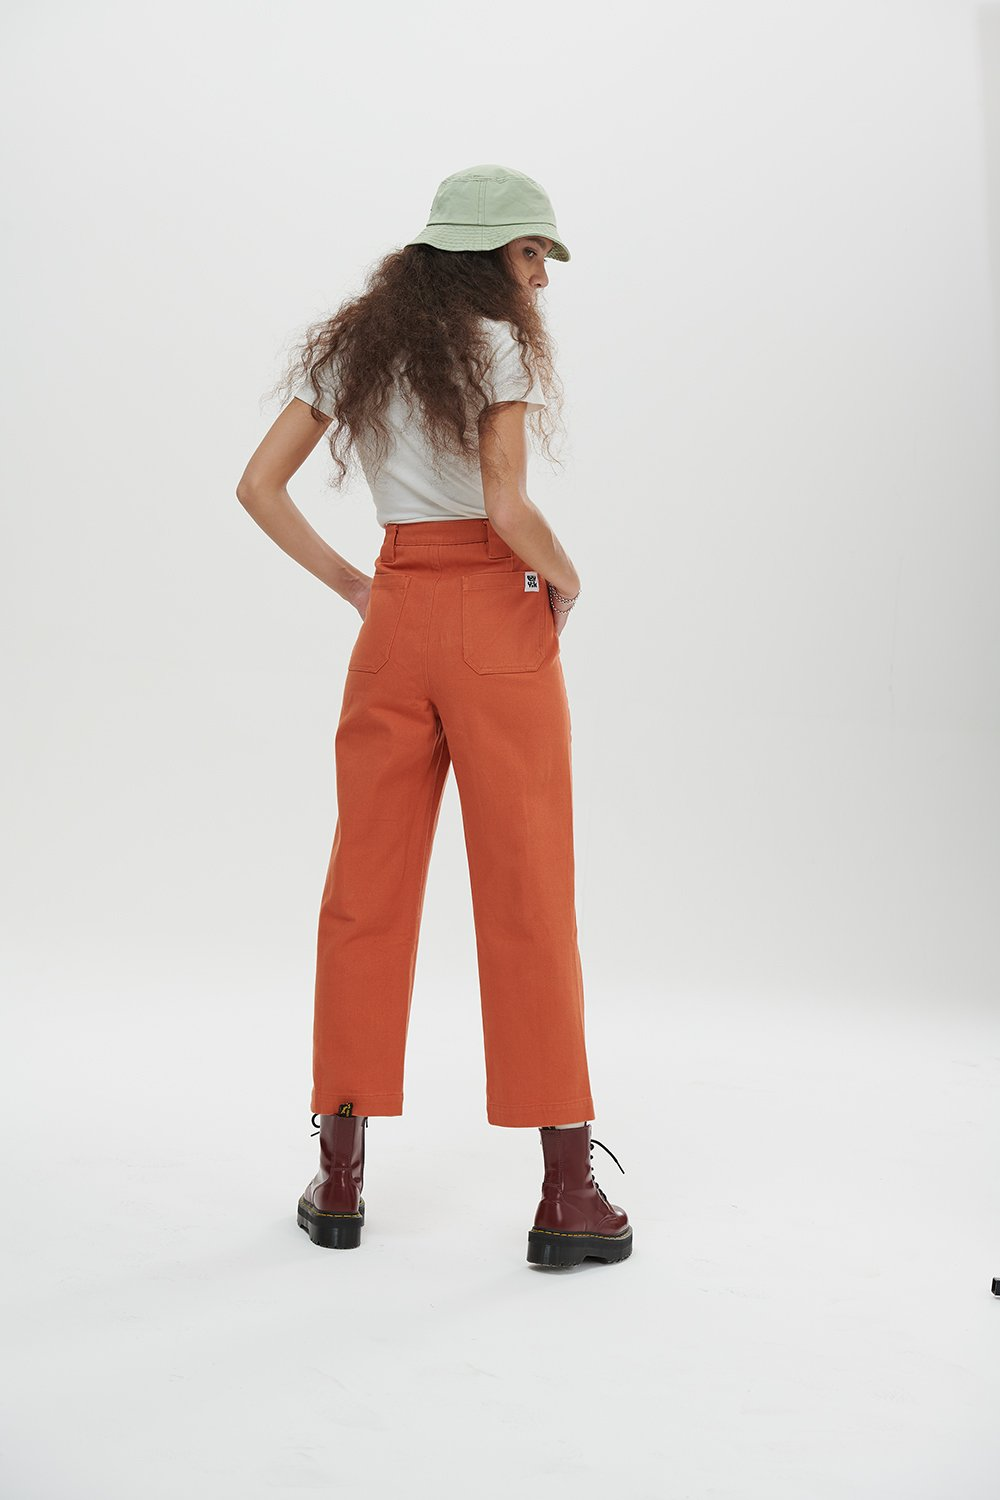 Lucy & Yak trousers 'Logan' Mid Rise Cargo Pants In Rust